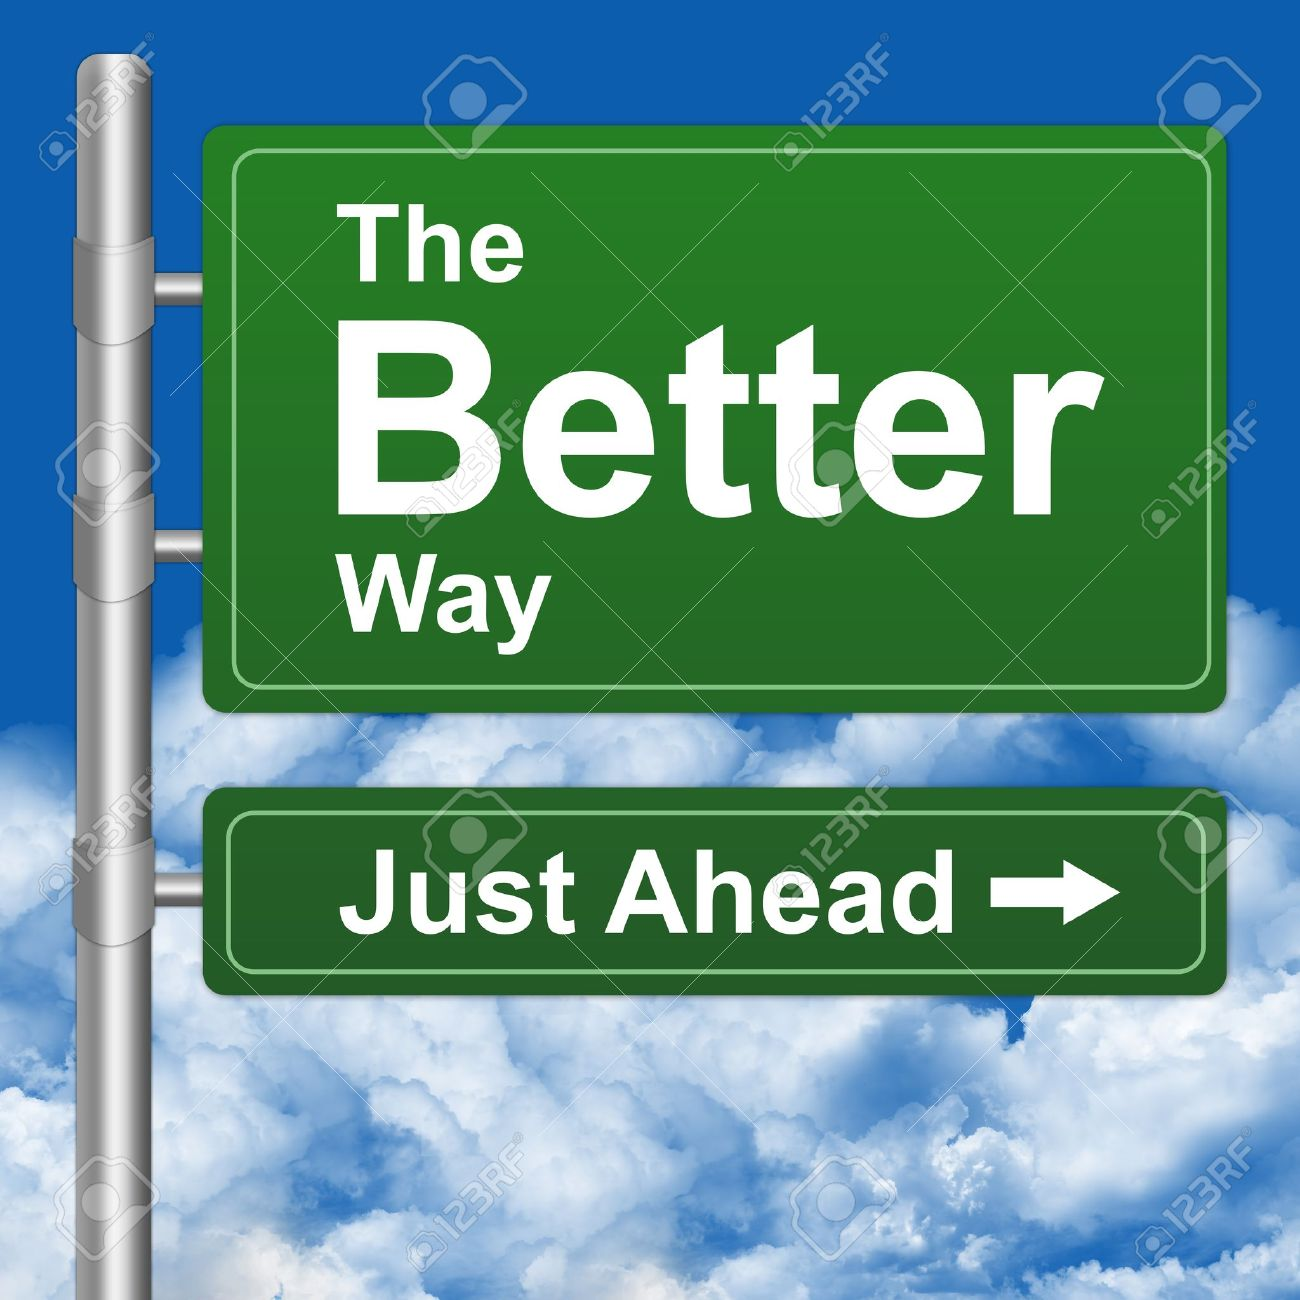 Better Way Just Ahead Highway Street Sign With Blue Sky Background Stock Photo - 14669802